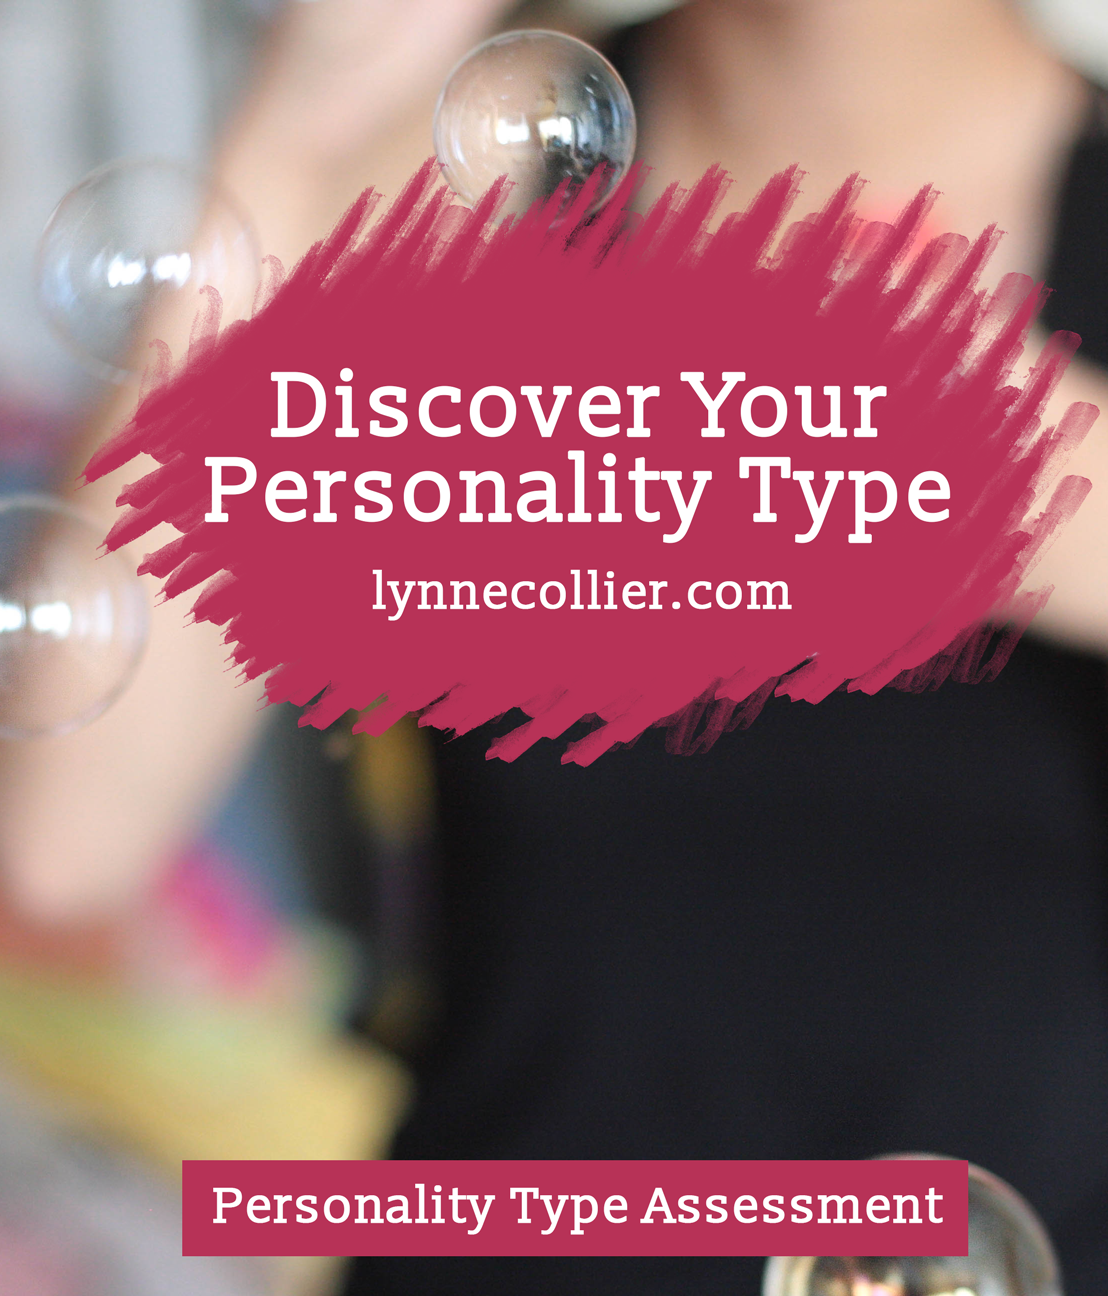 Personality Type Assessment